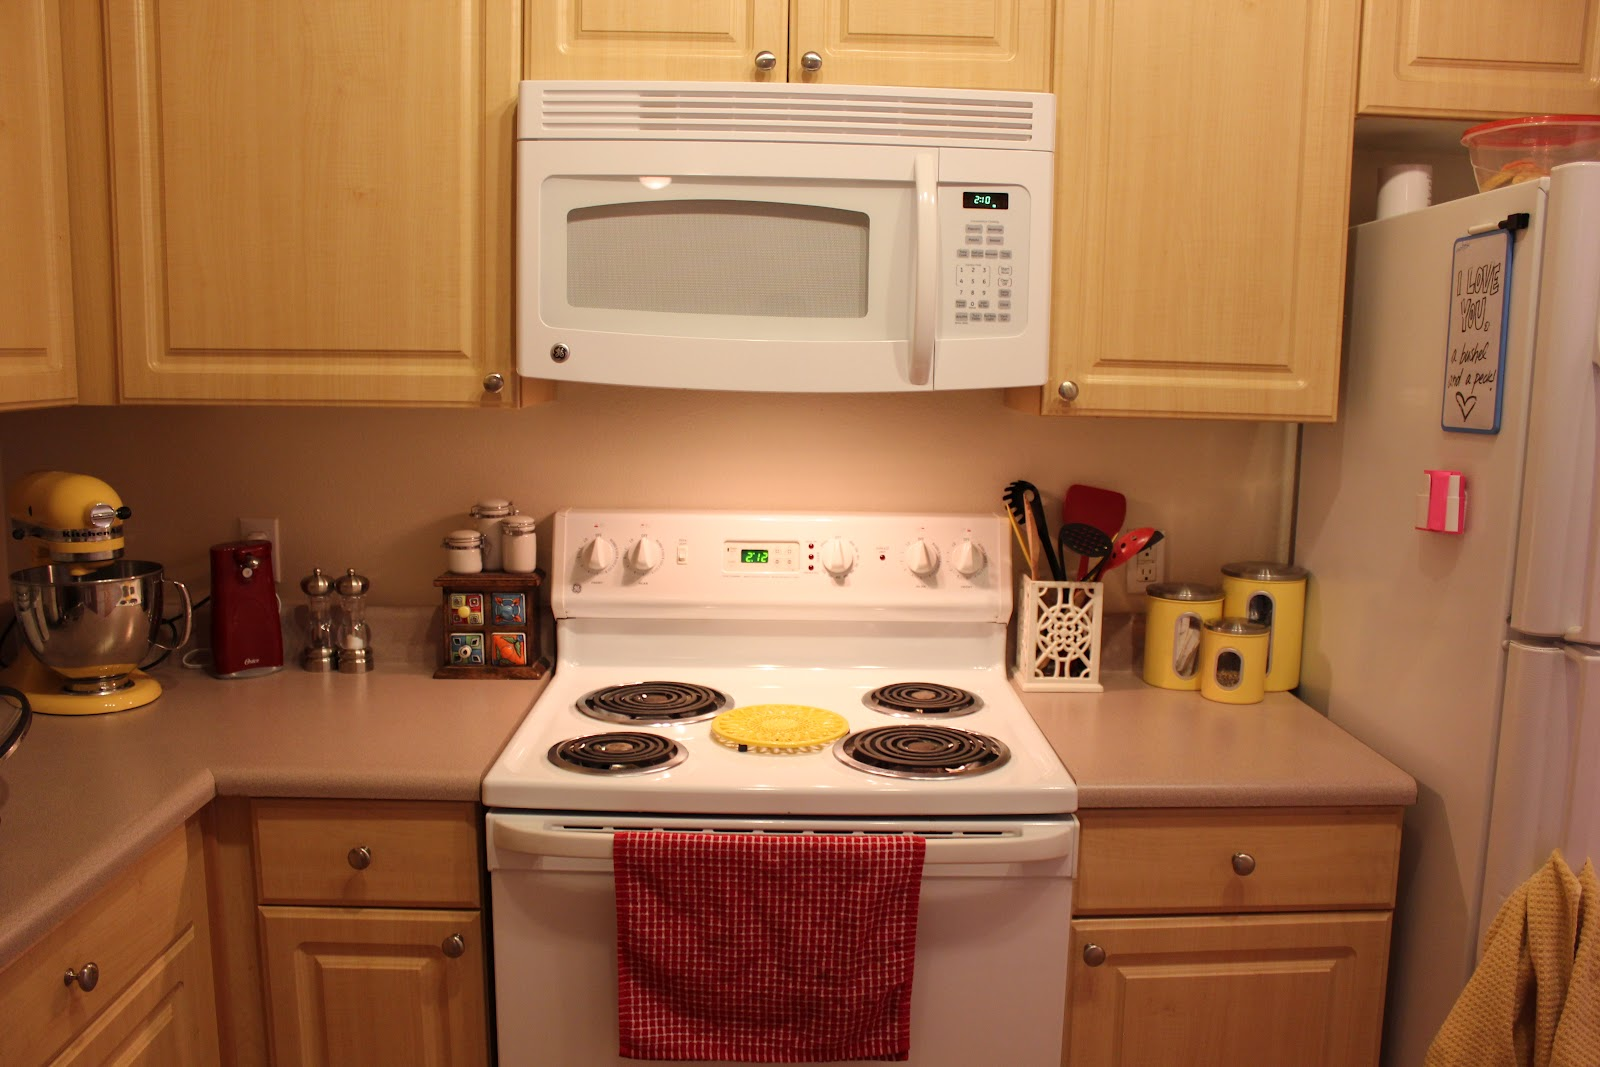 surprising yellow kitchen white appliances   The Cavanaughs as Coloradans: A View of Our Home! - Our ...